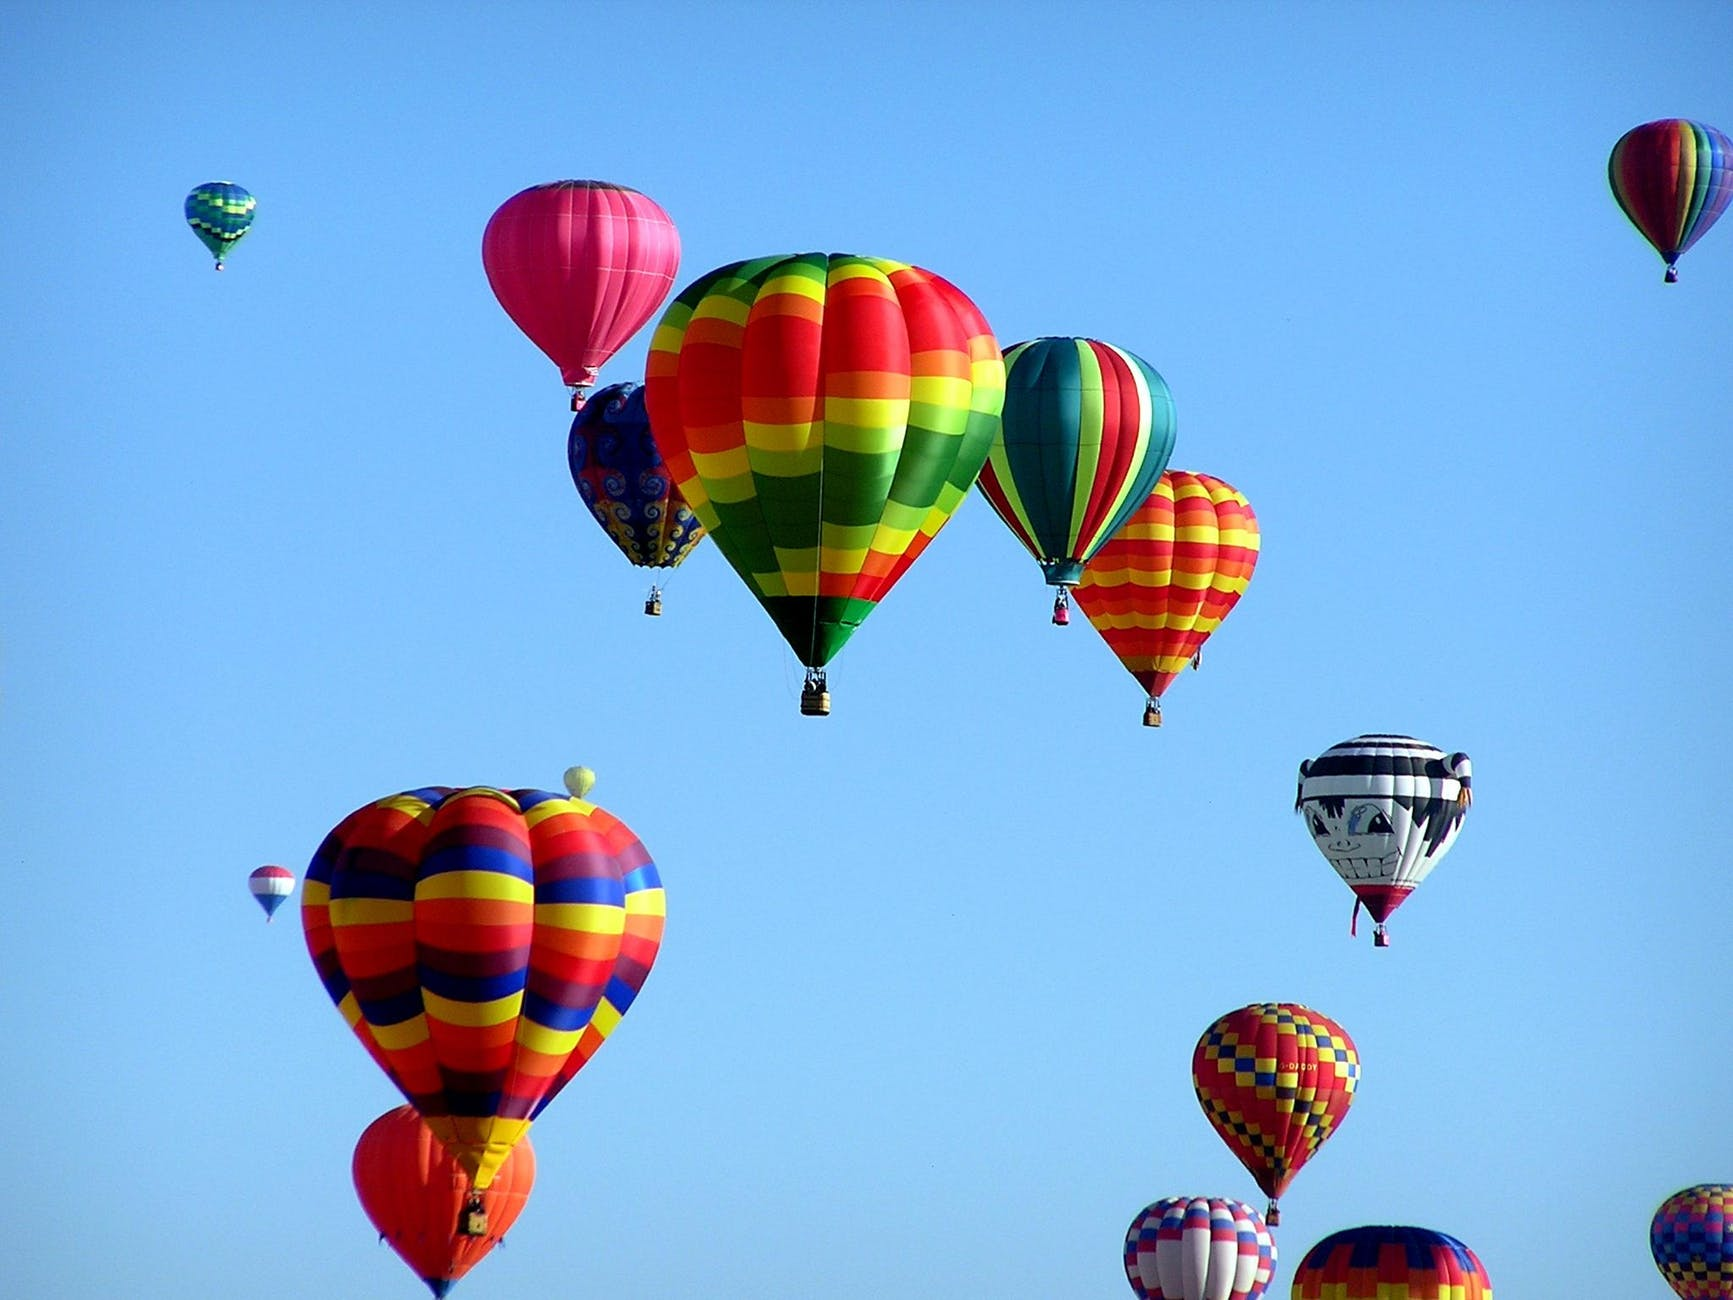 hot-air-balloons-hot-air-ballooning-event-51377.jpeg